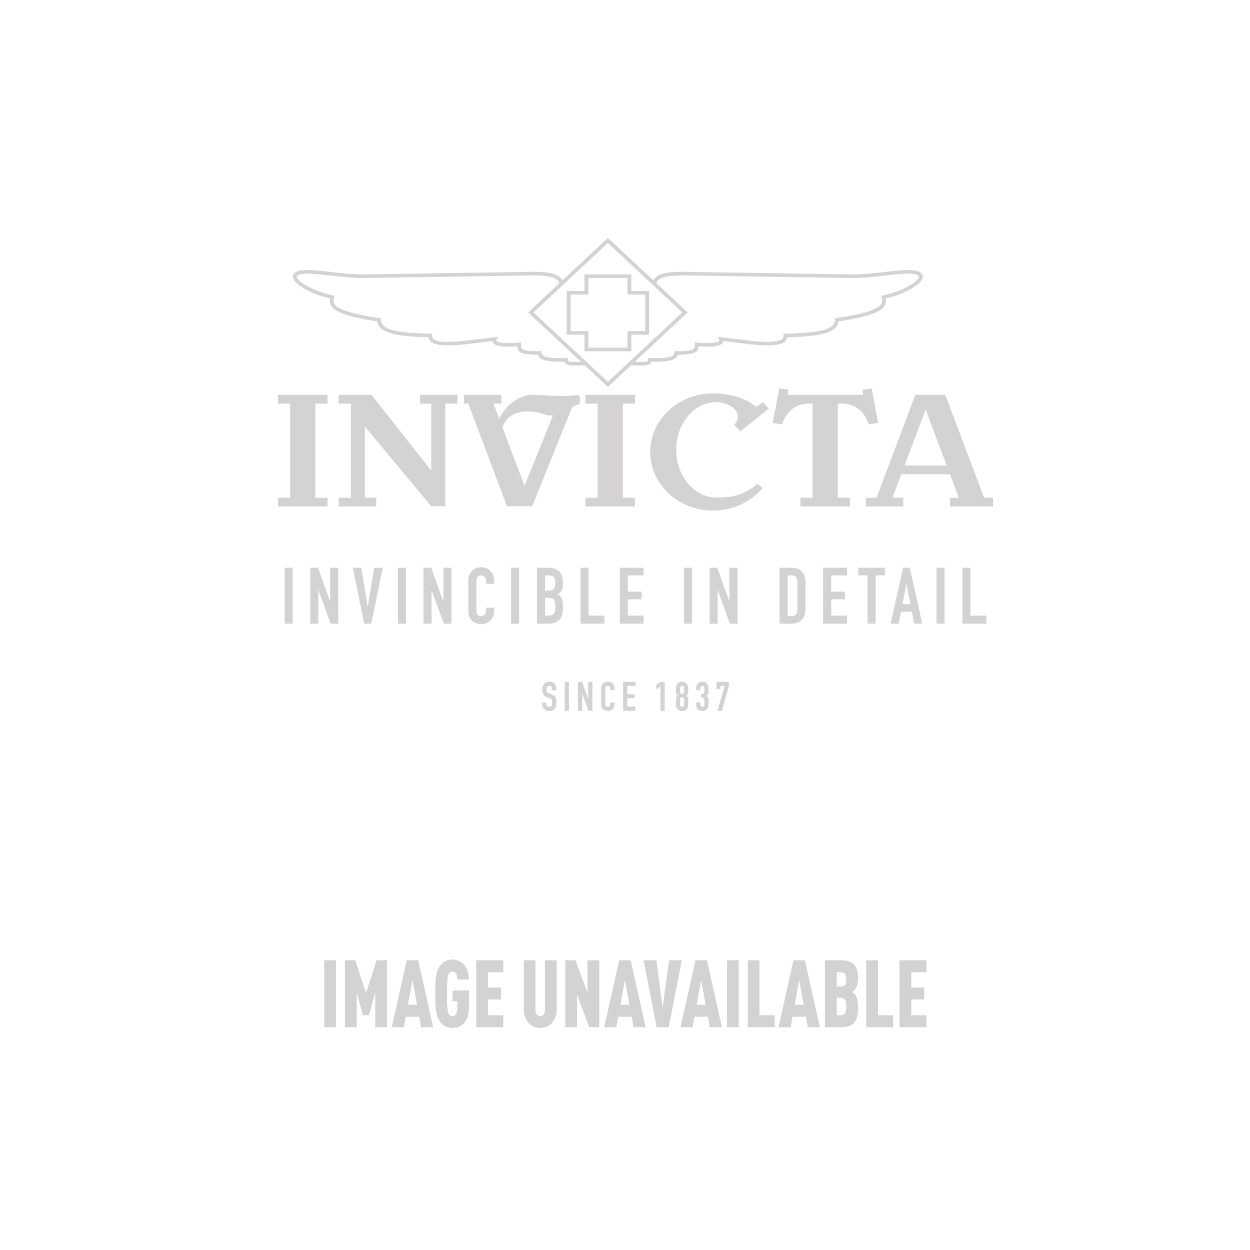 Invicta Specialty Quartz Watch - Gold, Stainless Steel case Stainless Steel band - Model 18045